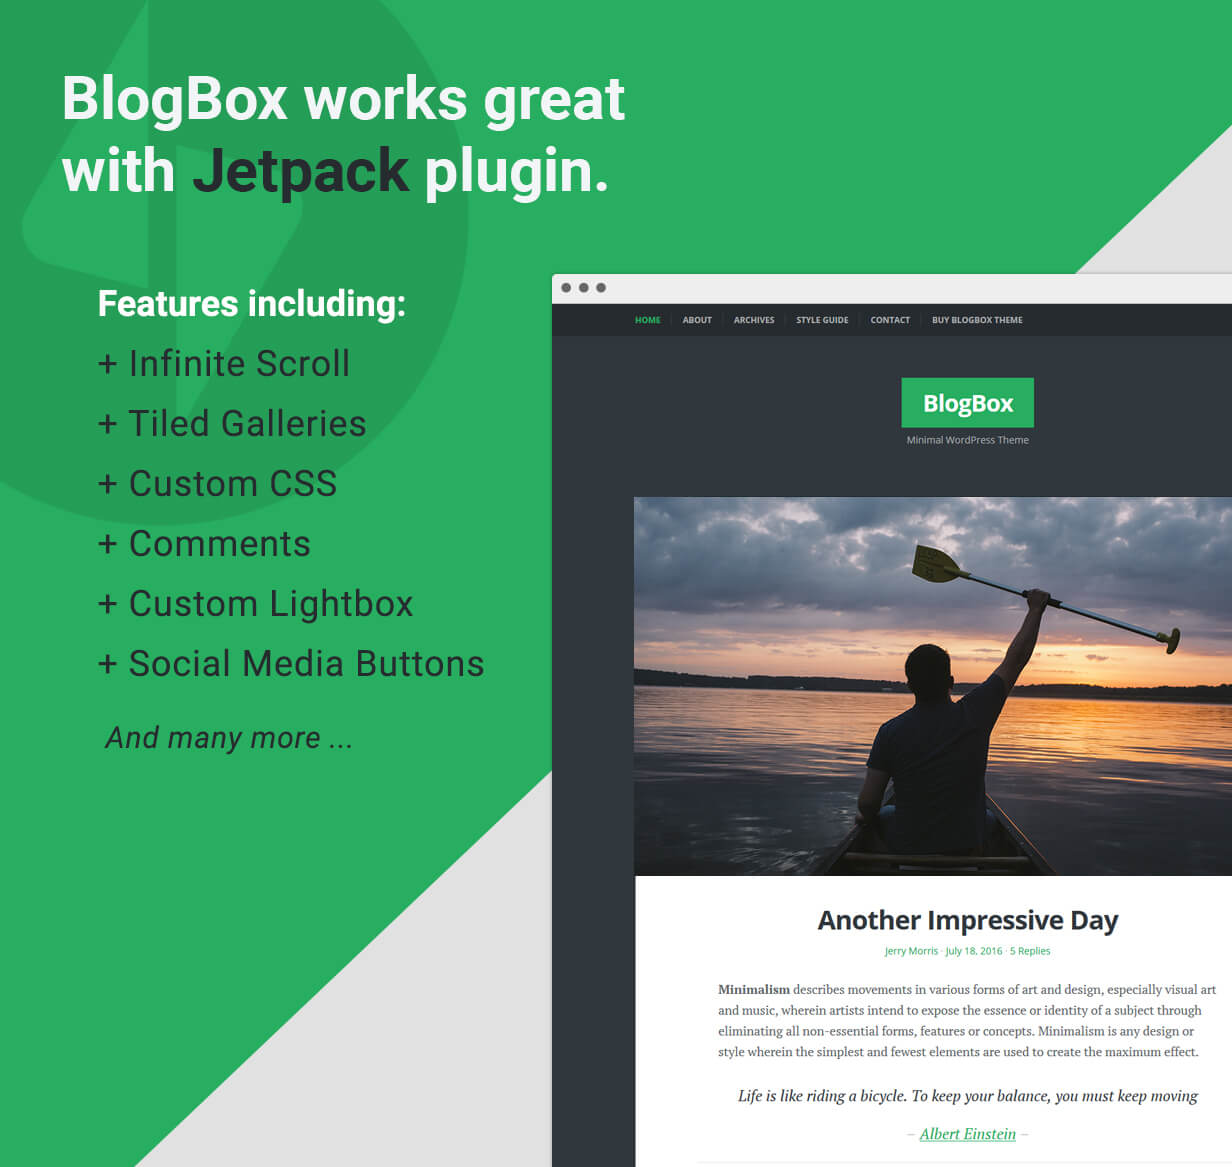 BlogBox - Supports JetPack Plugin